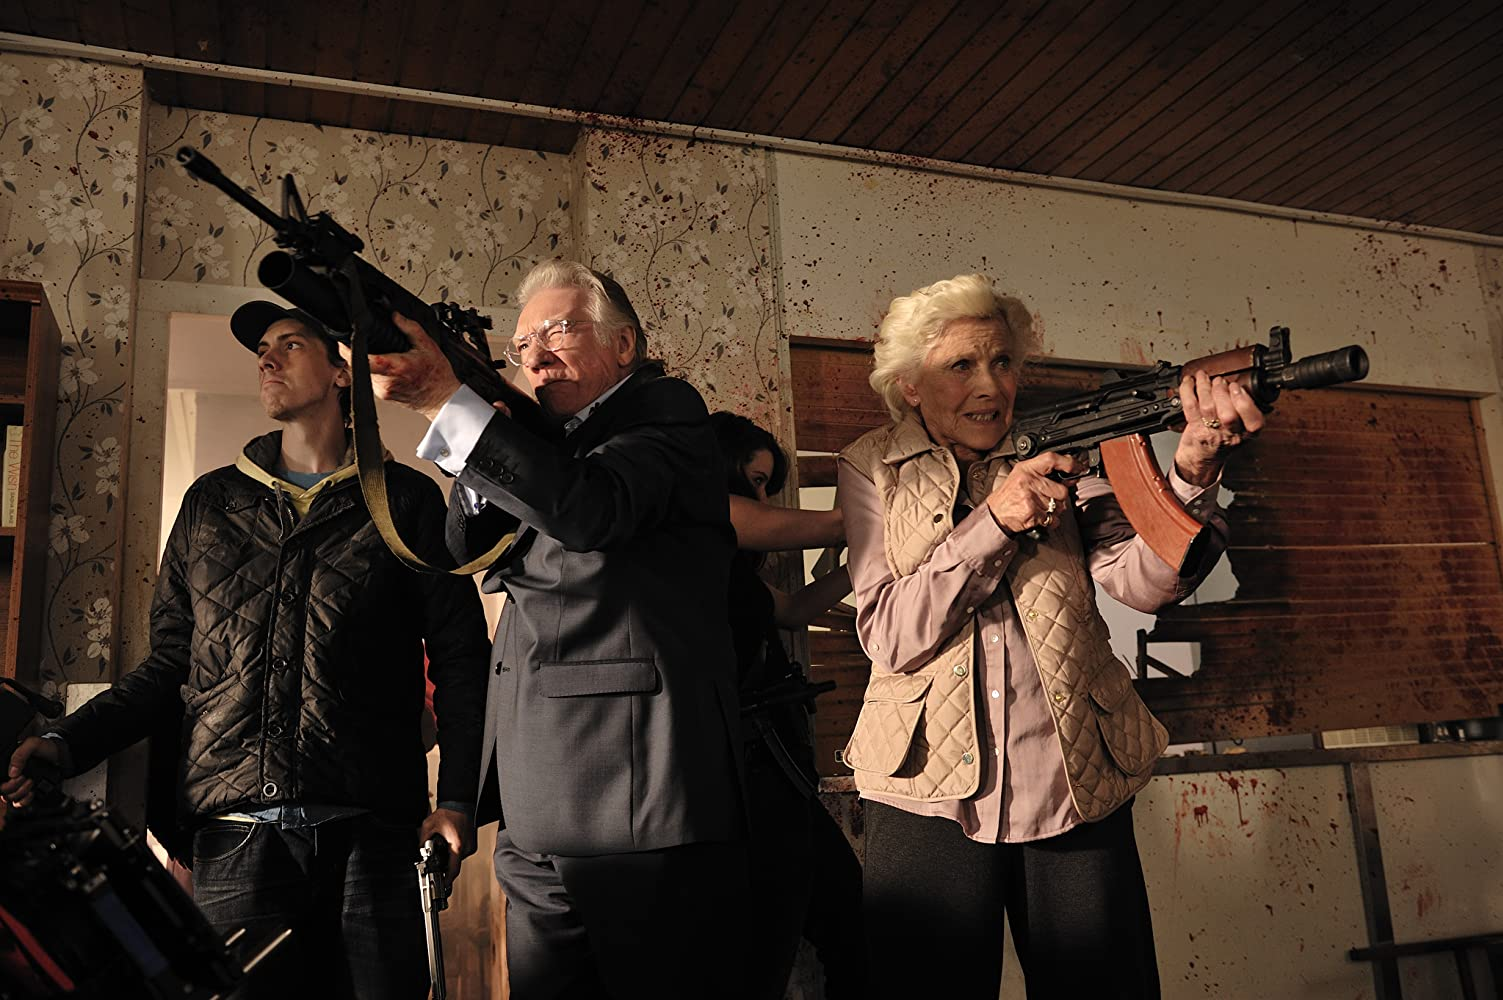 Honor Blackman, Alan Ford, and Rasmus Hardiker in Cockneys vs Zombies (2012)